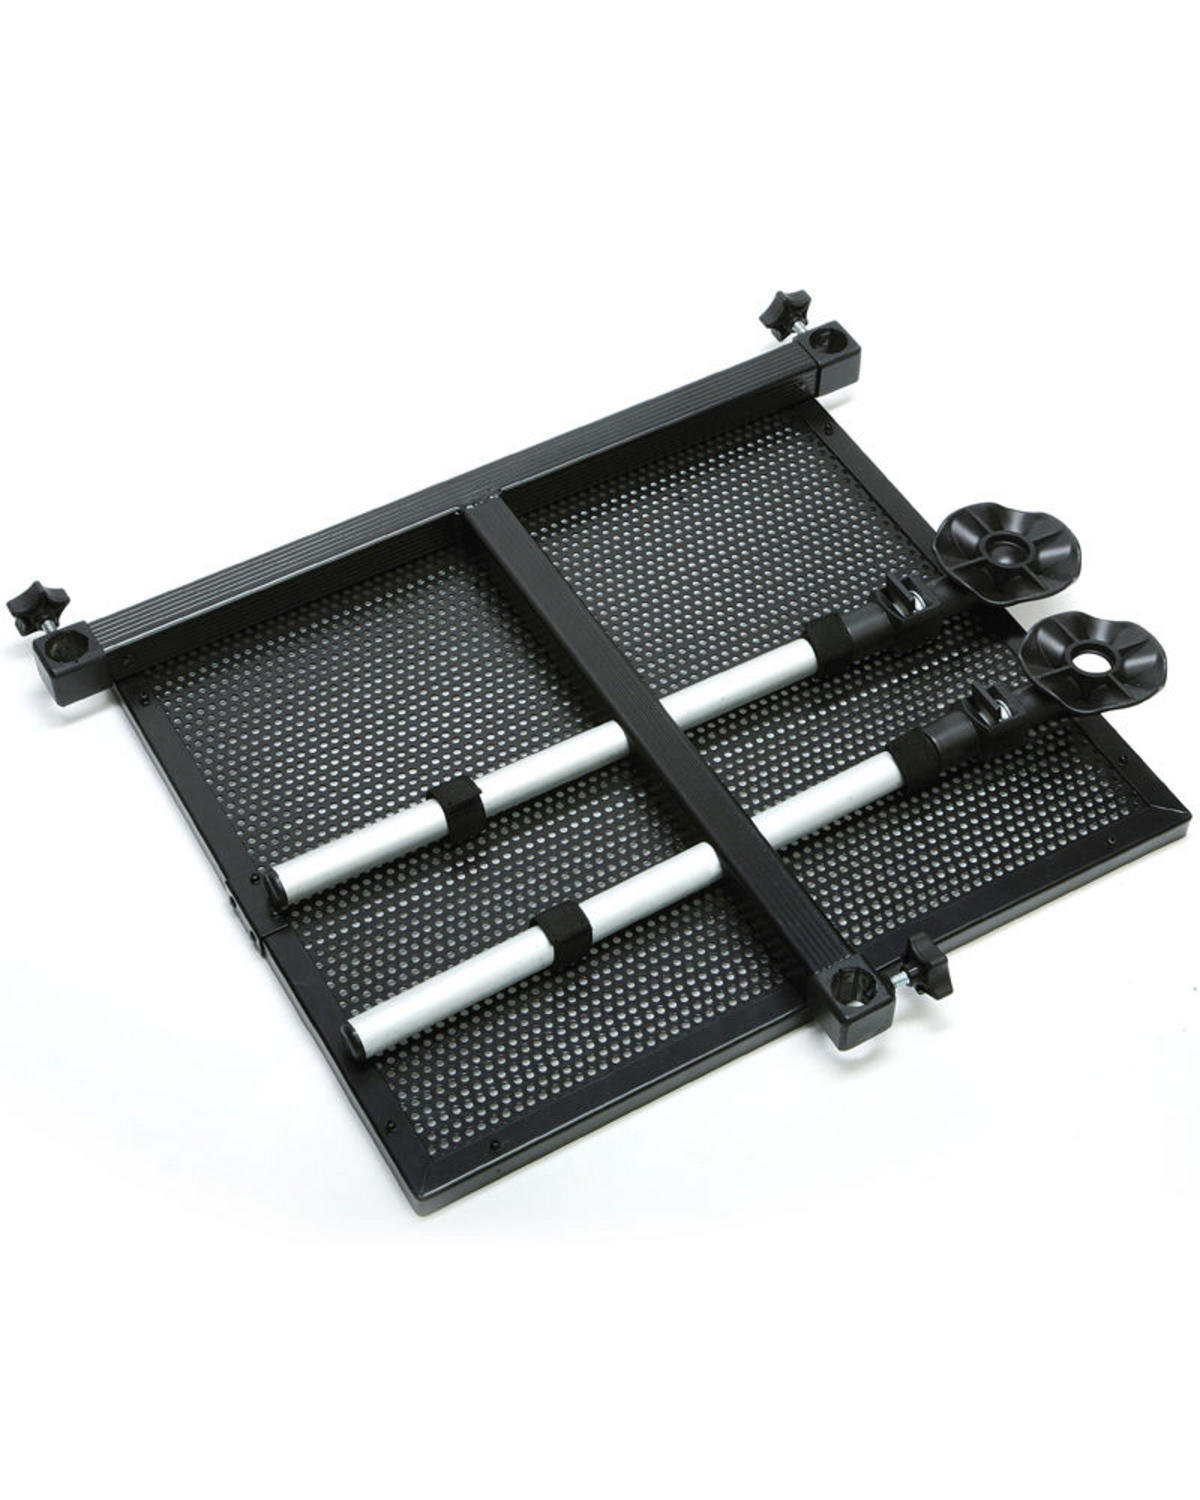 DAIWA SEAT BOX SIDE TRAY L - DSBST-L